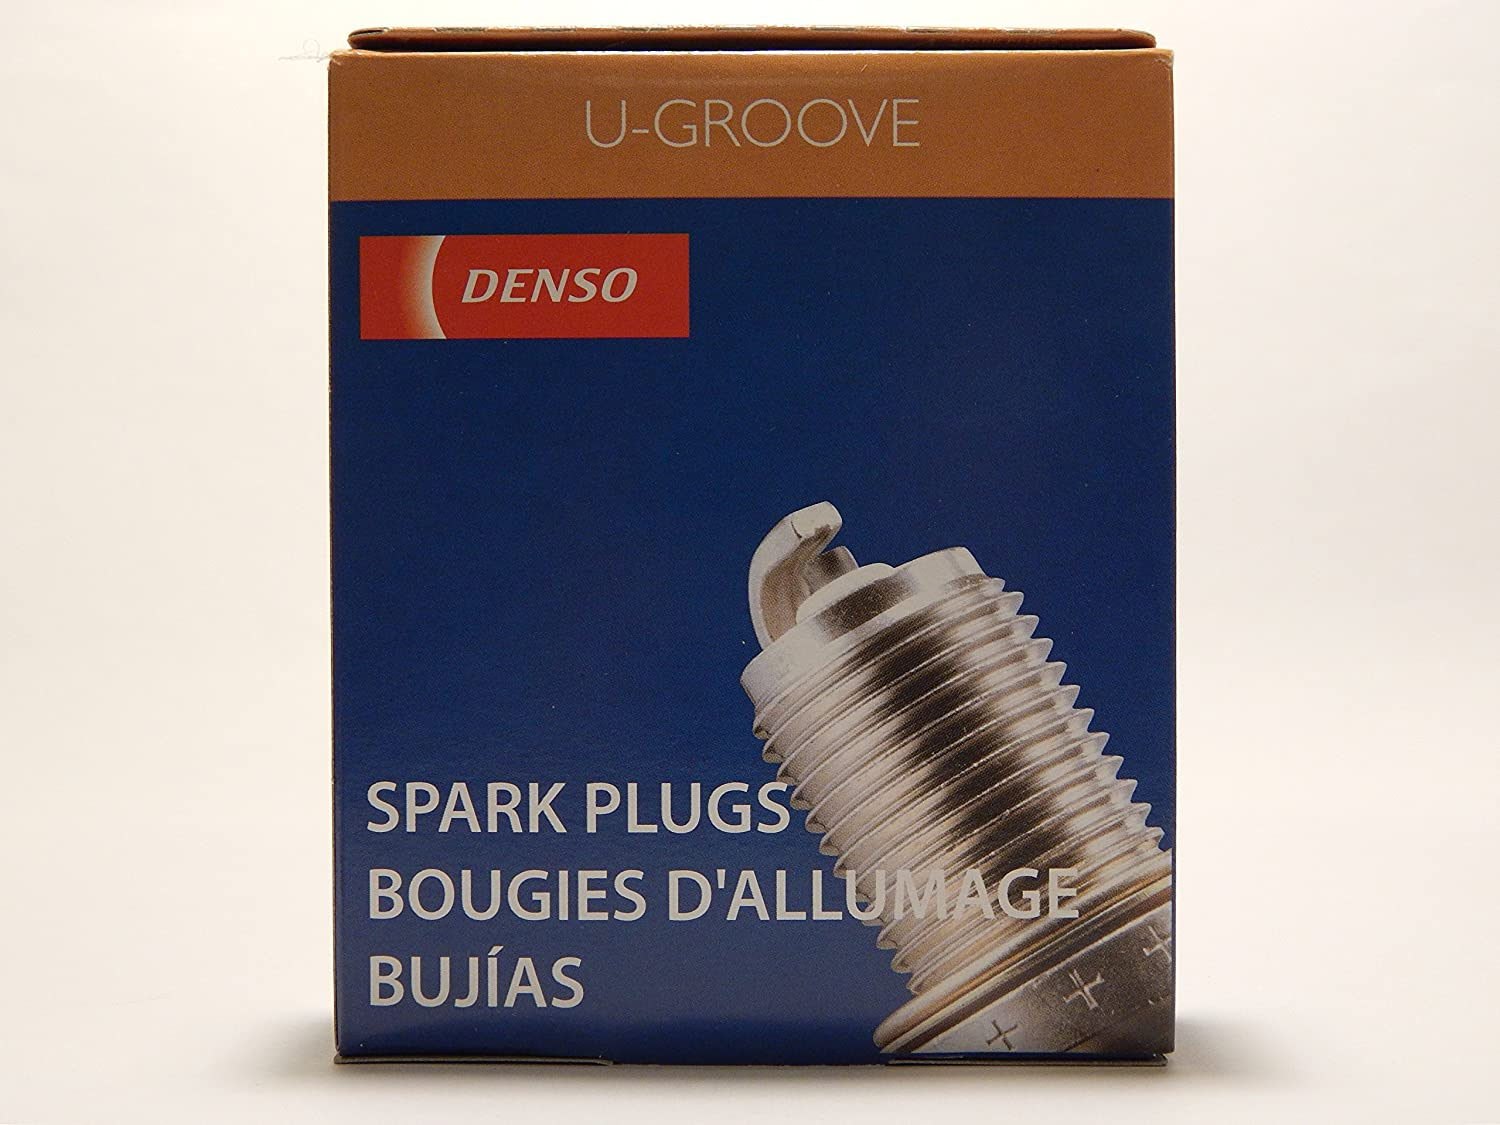 Amazon.com: 4 PCS *NEW* -- DENSO #3130 -- U-GROOVE - Standard Spark Plugs -- K16PR-U11: Automotive